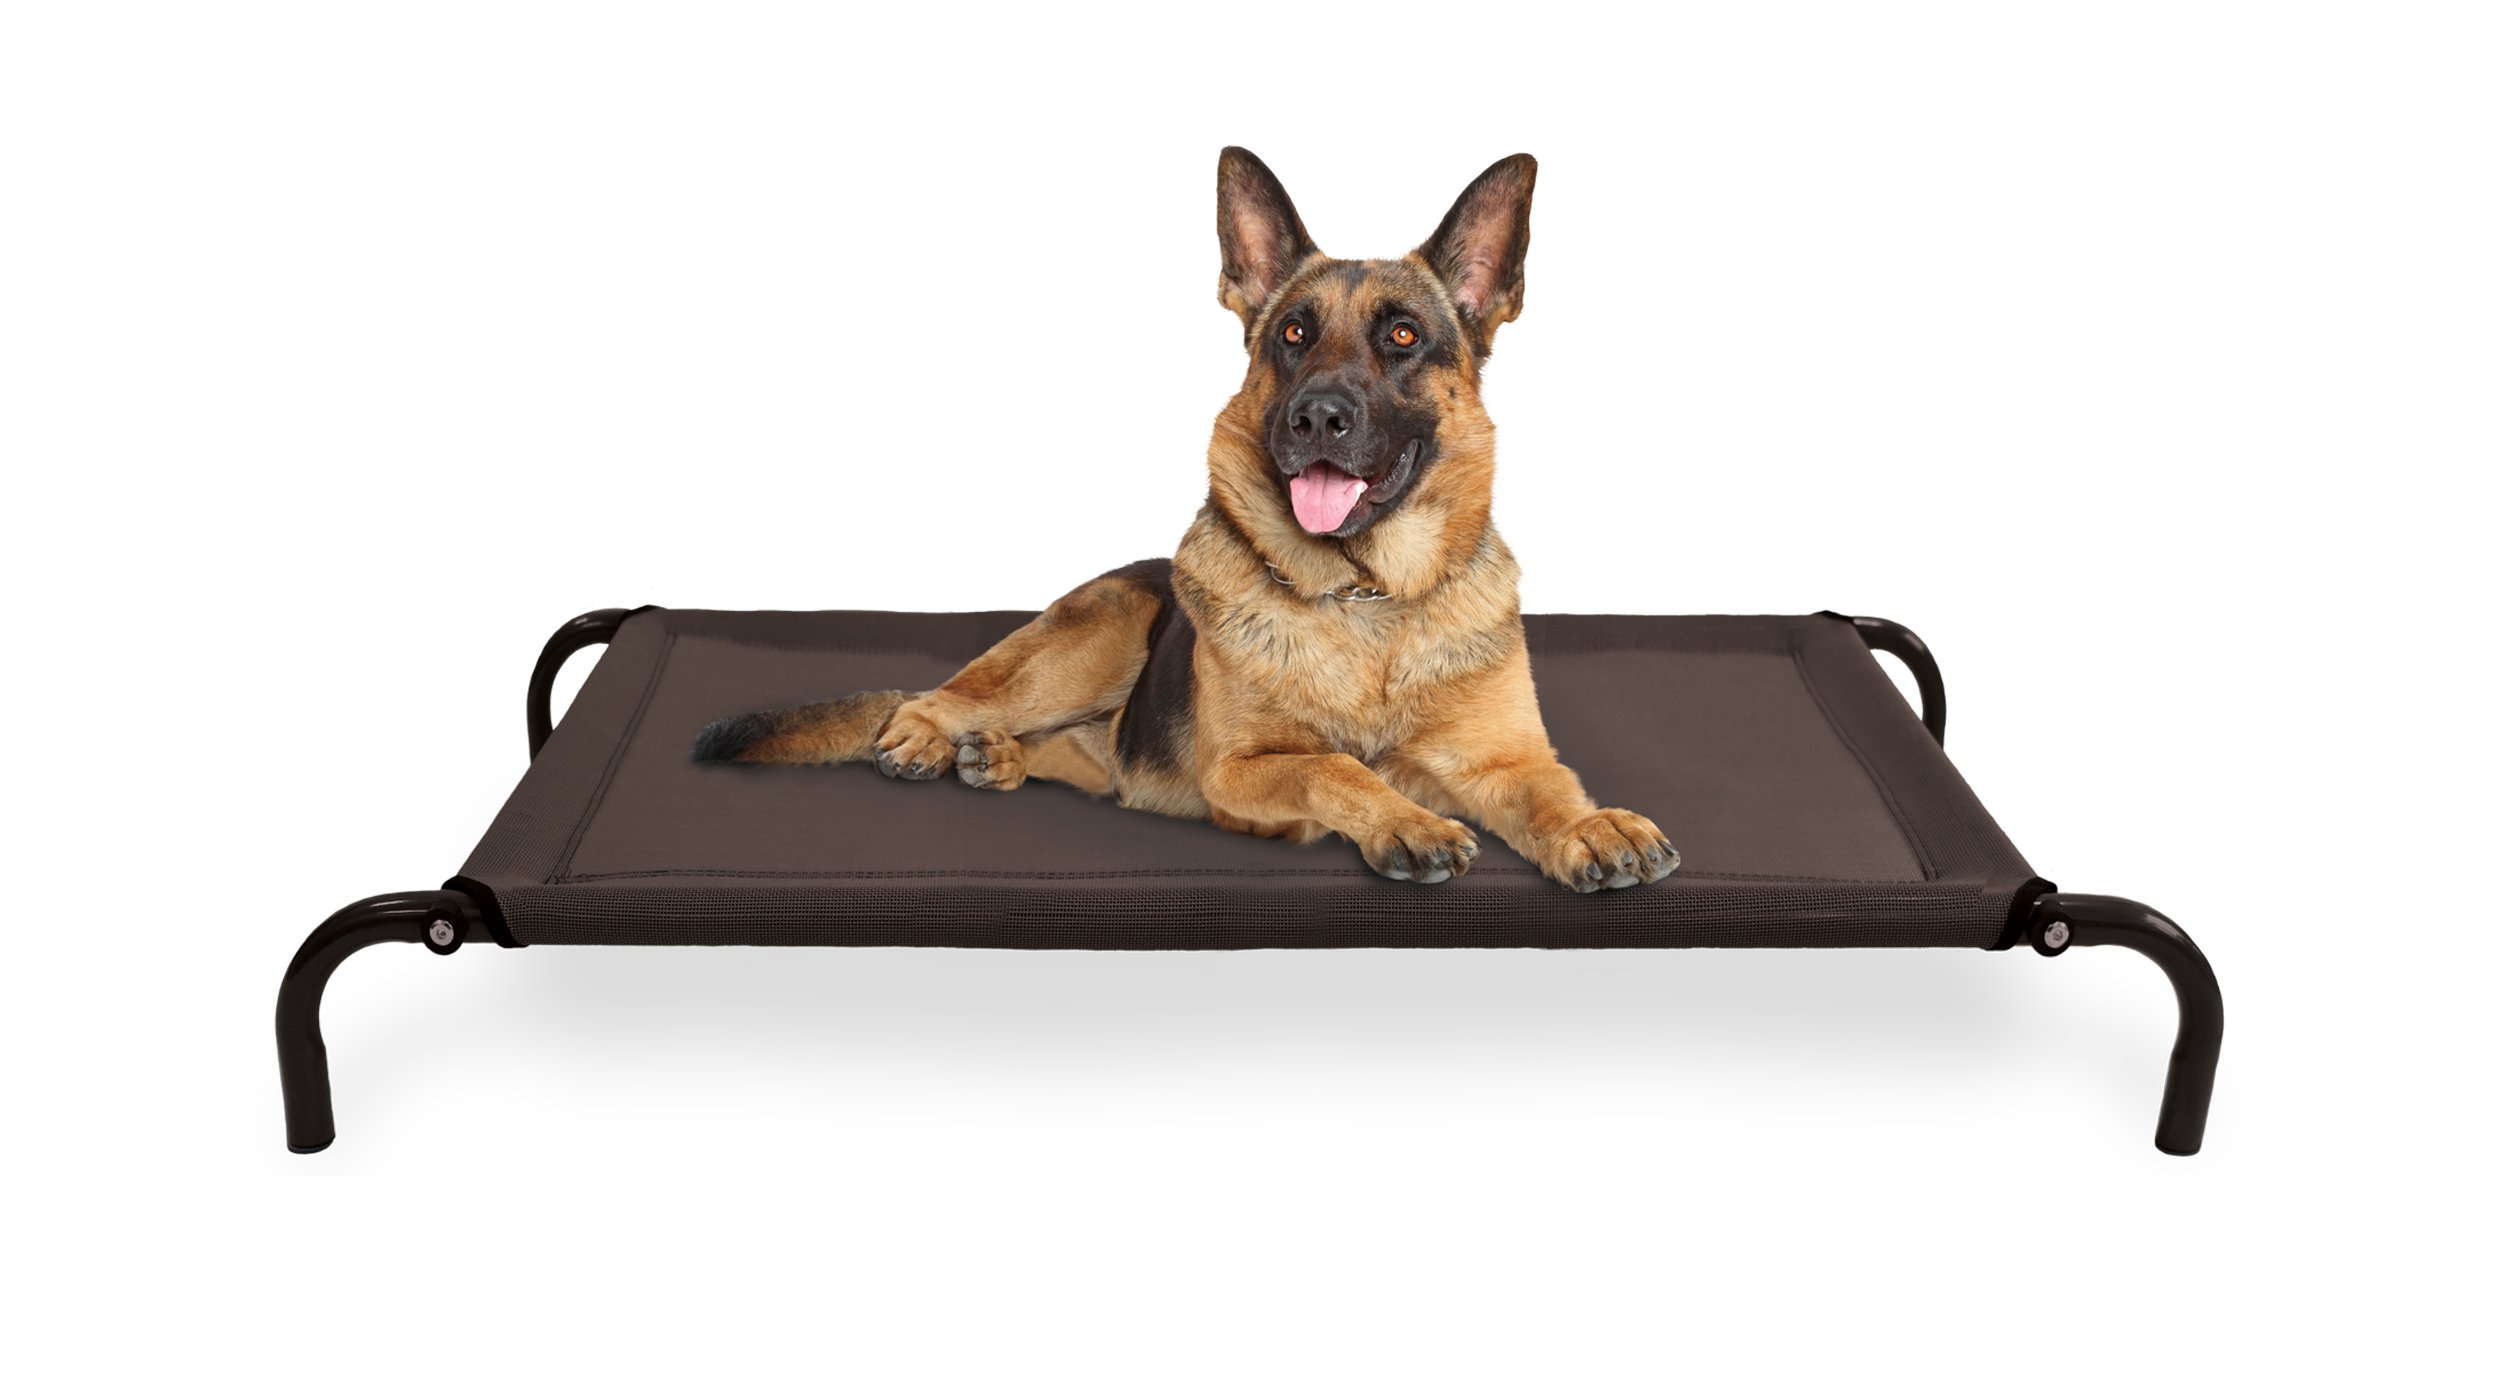 Furhaven Pet Dog Bed | Mold & Mildew Resistant Breathable Cooling Mesh Elevated Pet Cot Bed for Dogs & Cats, Espresso, Large by Furhaven